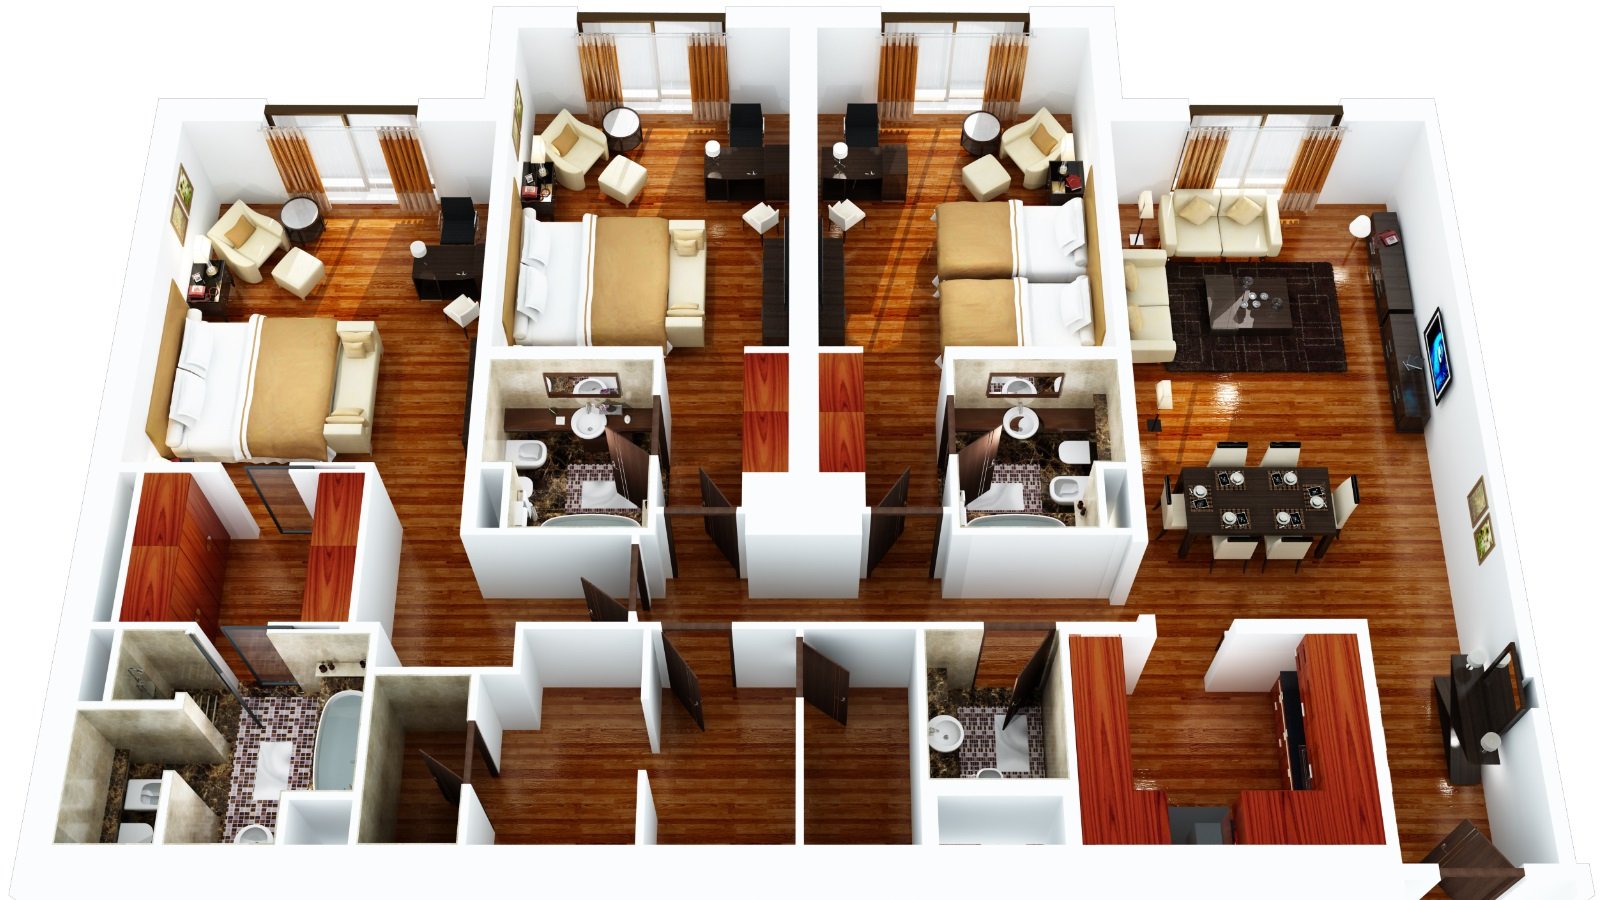 Grosvenor house dubai 2 bedroom residence apartments dubai marina apartment deals - Design of three room apartment ...